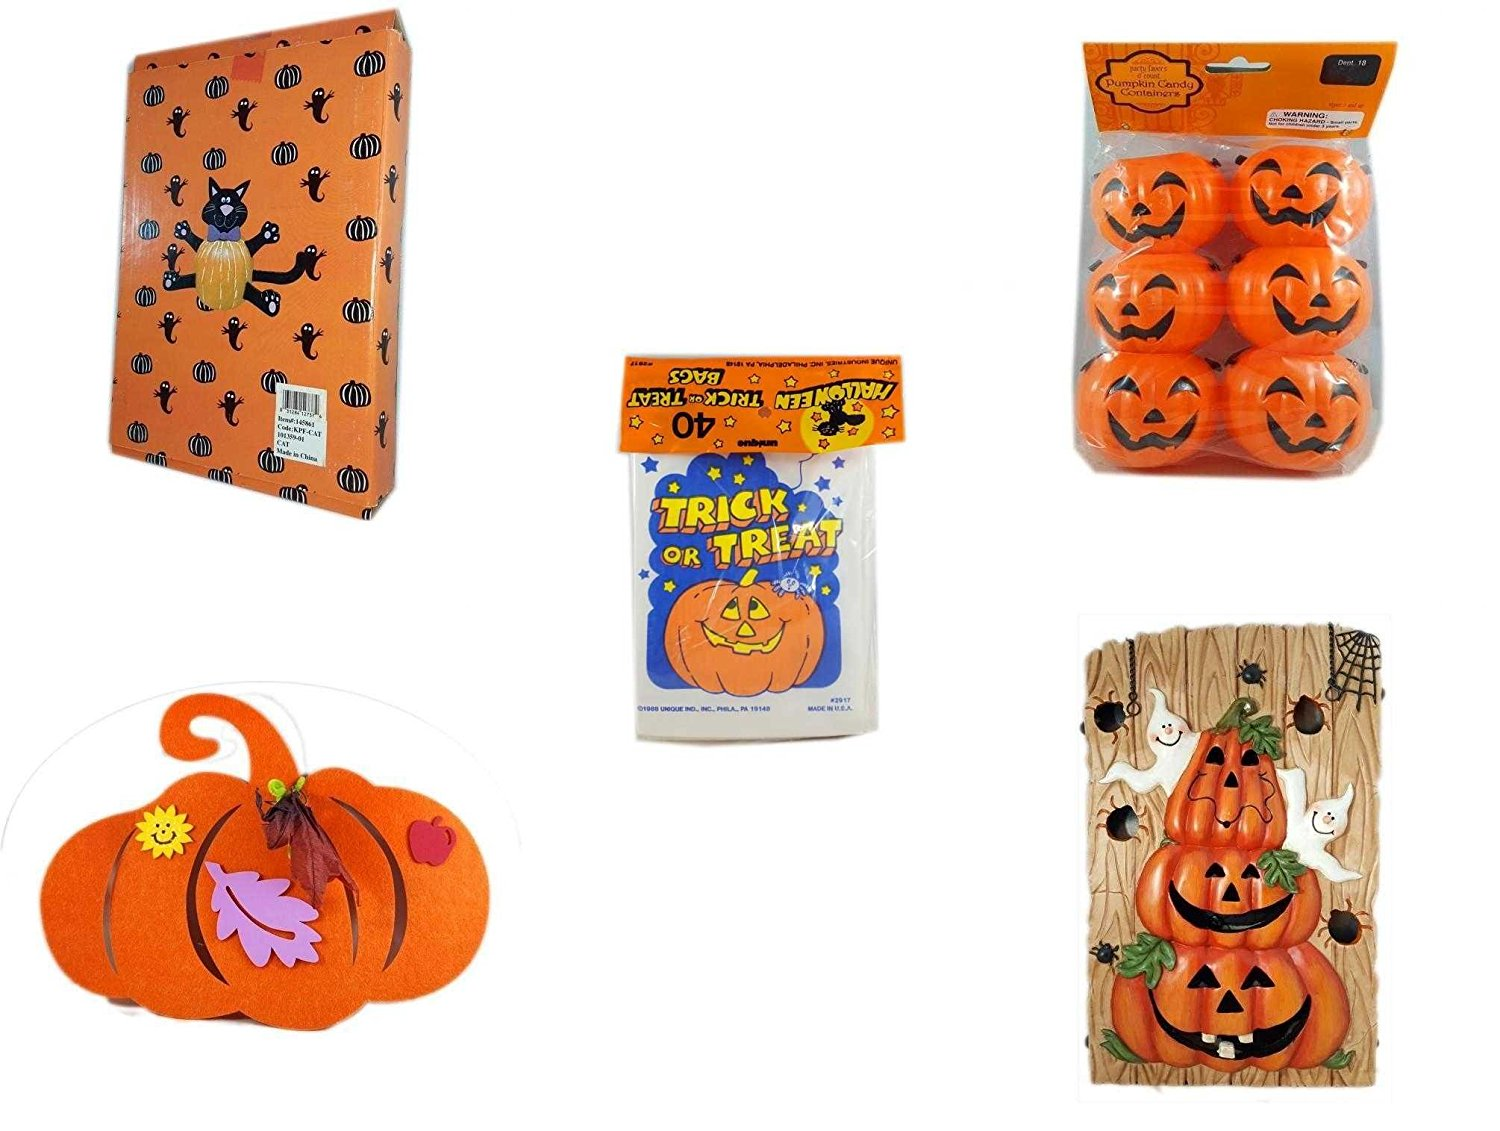 Halloween Fun Gift Bundle [5 piece] - Halloween Cat Pumpkin Push In 5 Piece Head Arms Legs - Party Favors Pumpkin Candy Containers 6 Count - Halloween Trick or Treat Bags 40/ct - Halloween Felt Pump